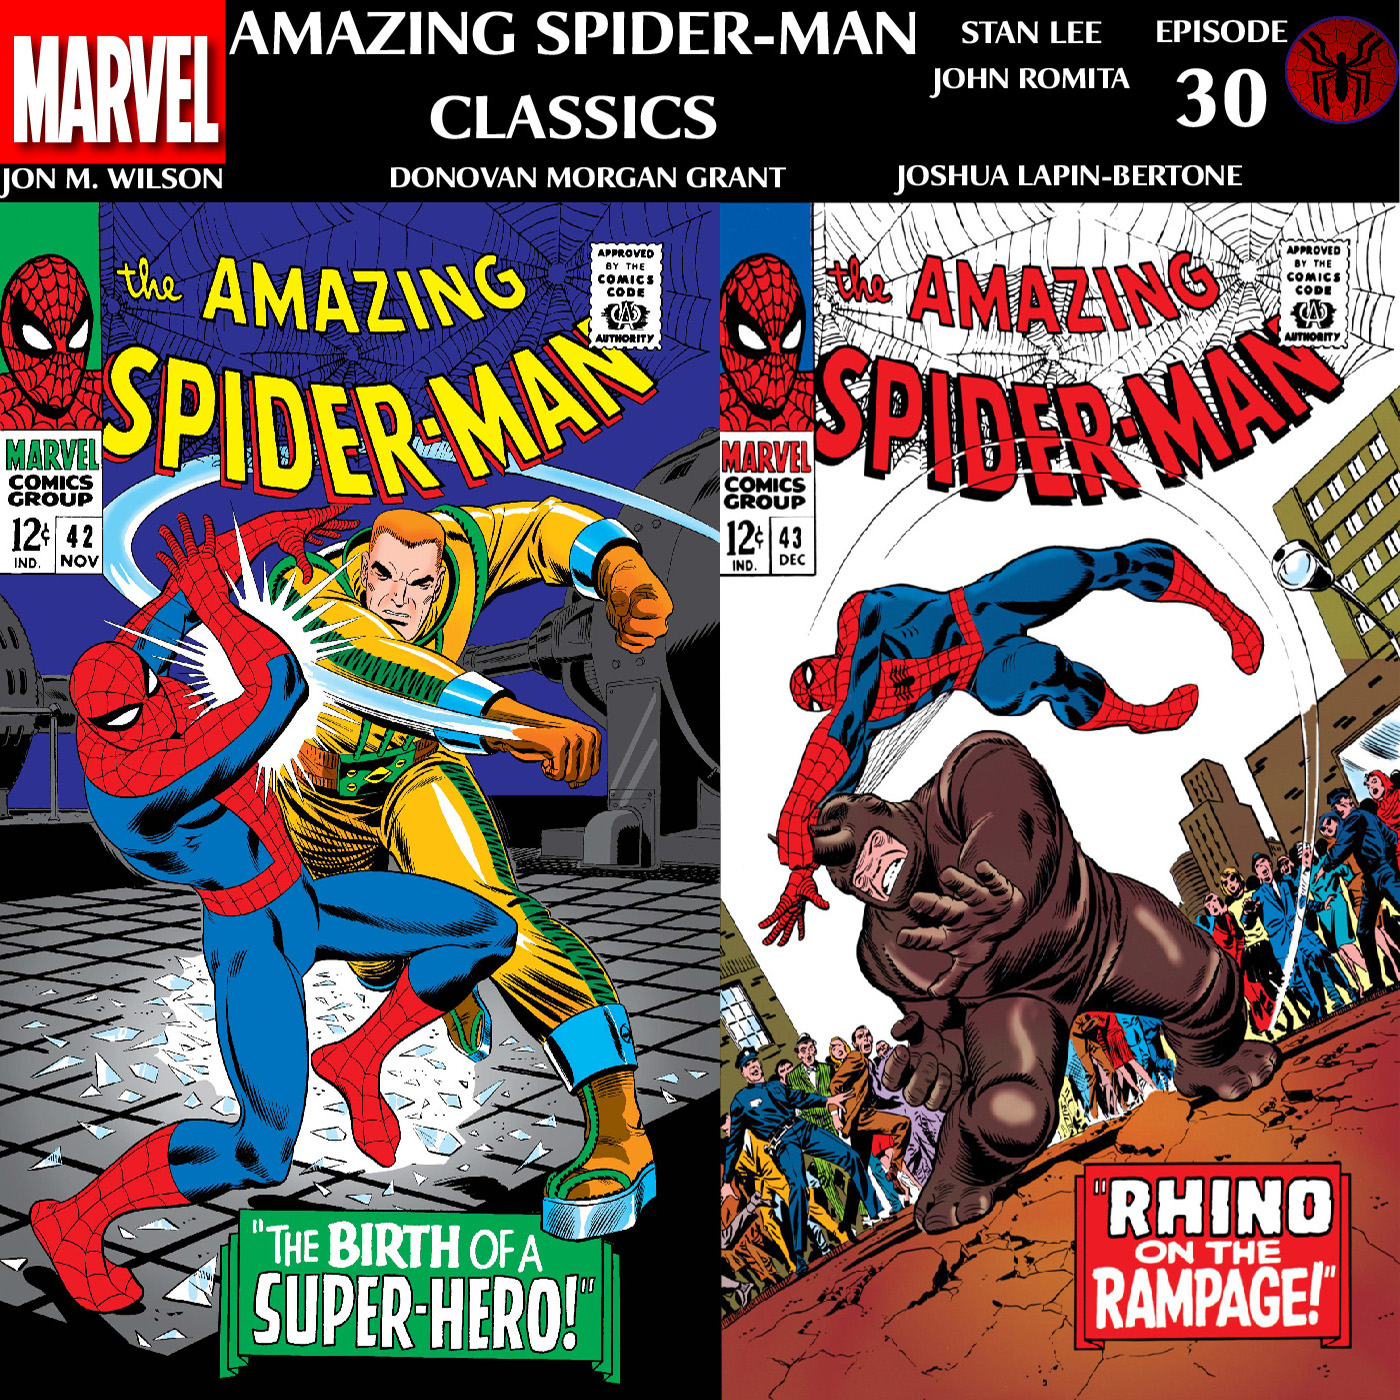 ASM Classics Episode 30: ASM 42 & 43, with Brad Douglas